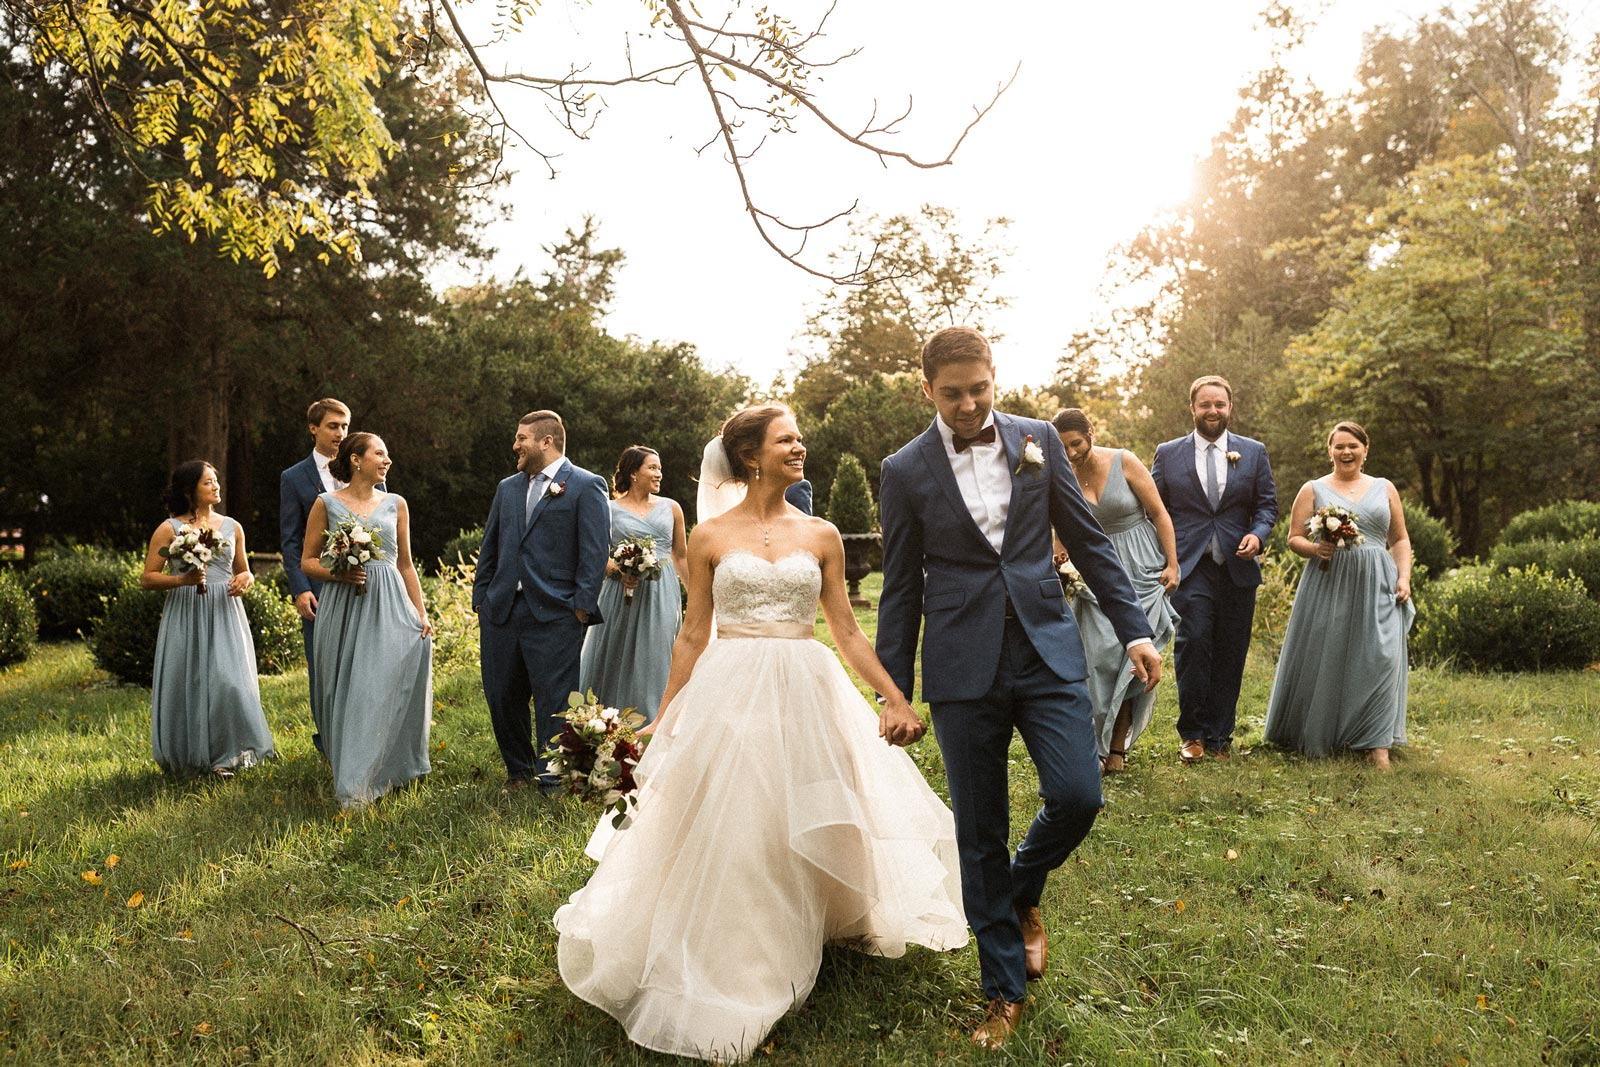 The wedding of Lisa Lockerby and Andrew Workman at Murray Hill in Leesburg, Virginia.